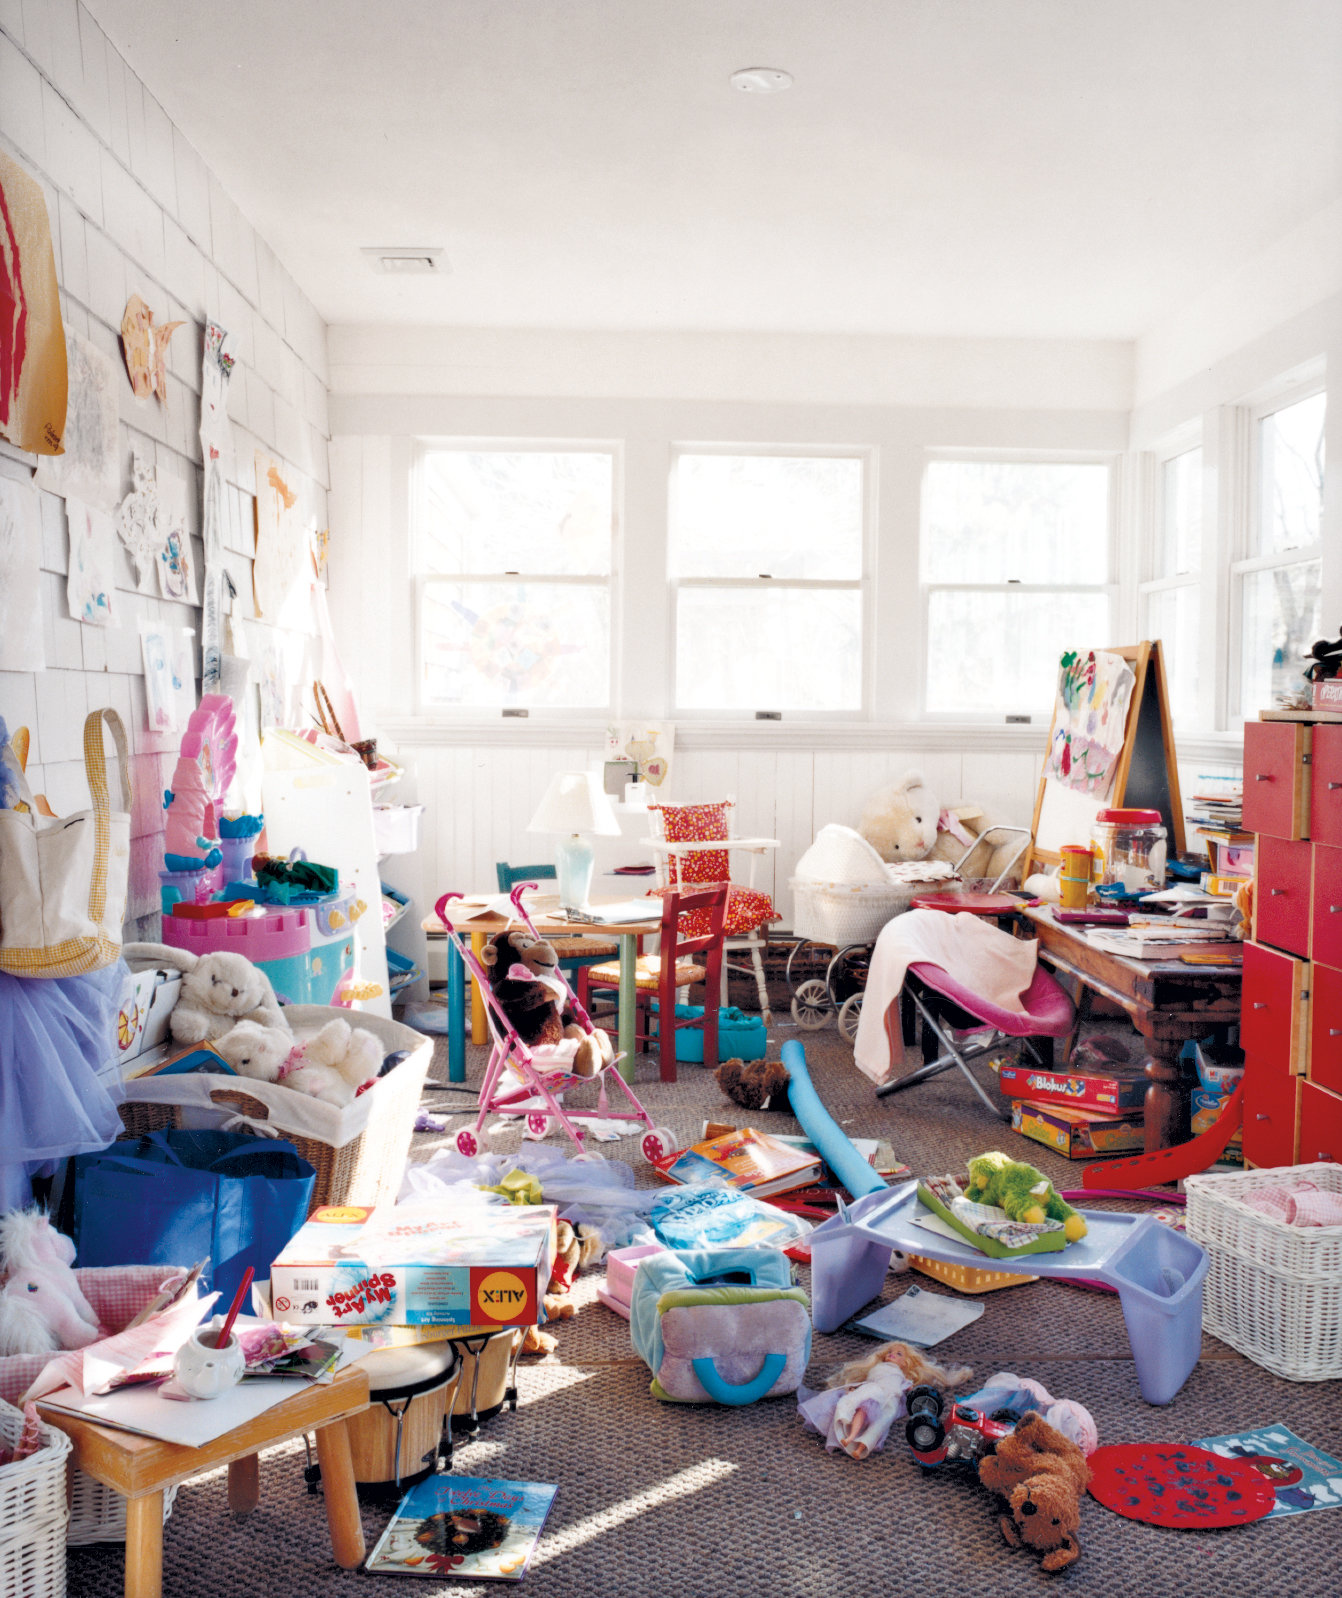 A MESSY PLAYROOM TURNED INTO AN ORGANISED ONE | ideaforyourspace.com